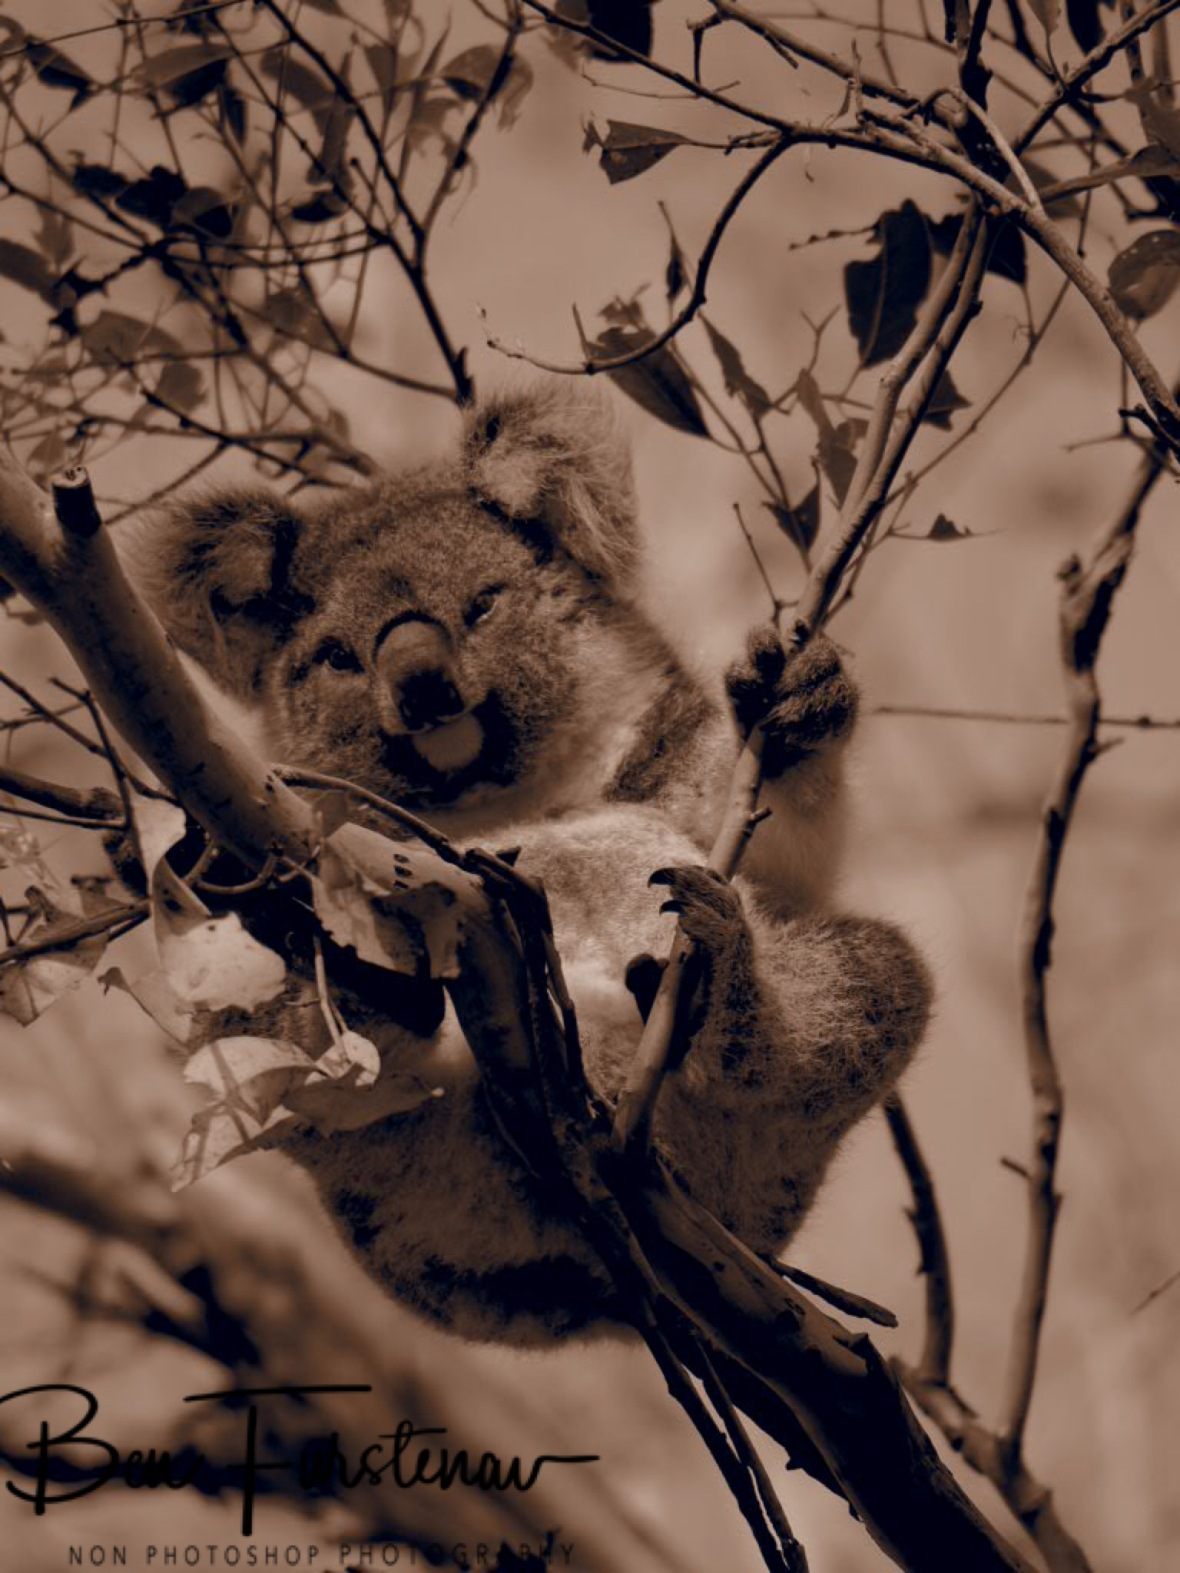 A smiley bear in sepia at Woodburn, Northern New South Wales, Australia